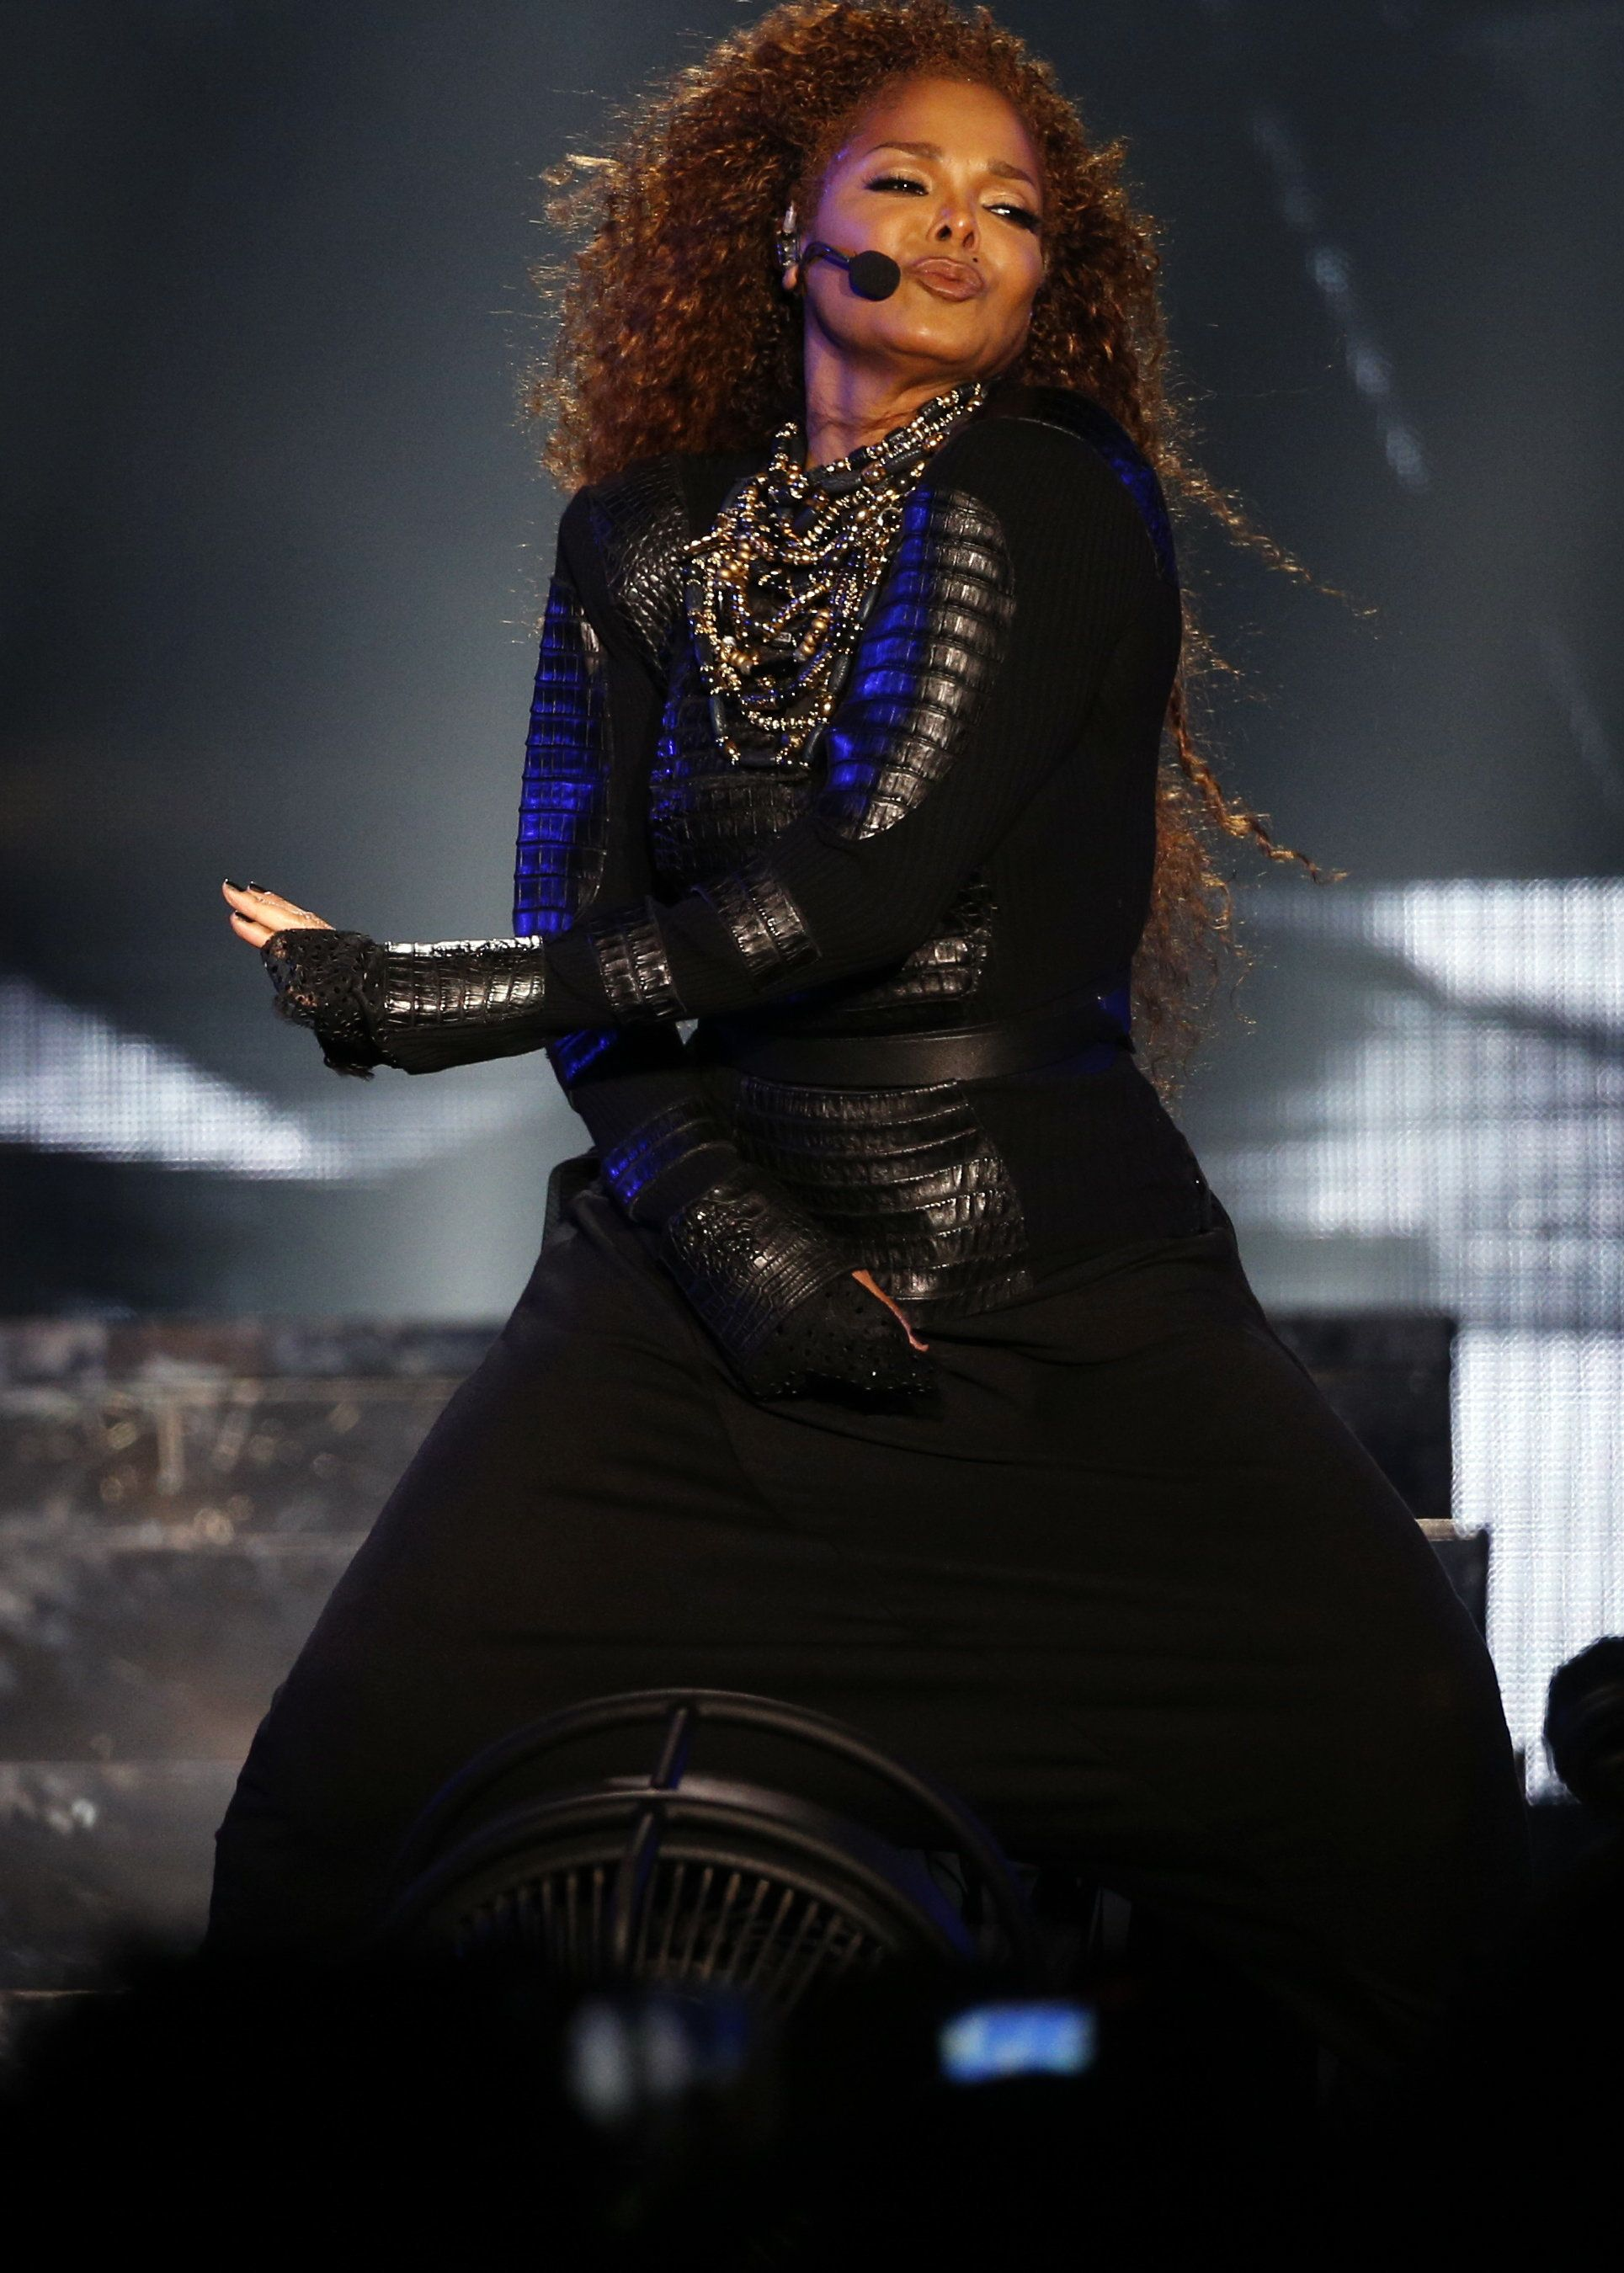 US singer Janet Jackson performs during the Dubai World Cup horse racing event on March 26, 2016 at the Meydan racecourse in the United Arab Emirate of Dubai. Janet Jackson returned to the stage after a four-month hiatus for mysterious health reasons, bringing her energetic dance show to Dubai.   / AFP / KARIM SAHIB        (Photo credit should read KARIM SAHIB/AFP/Getty Images)